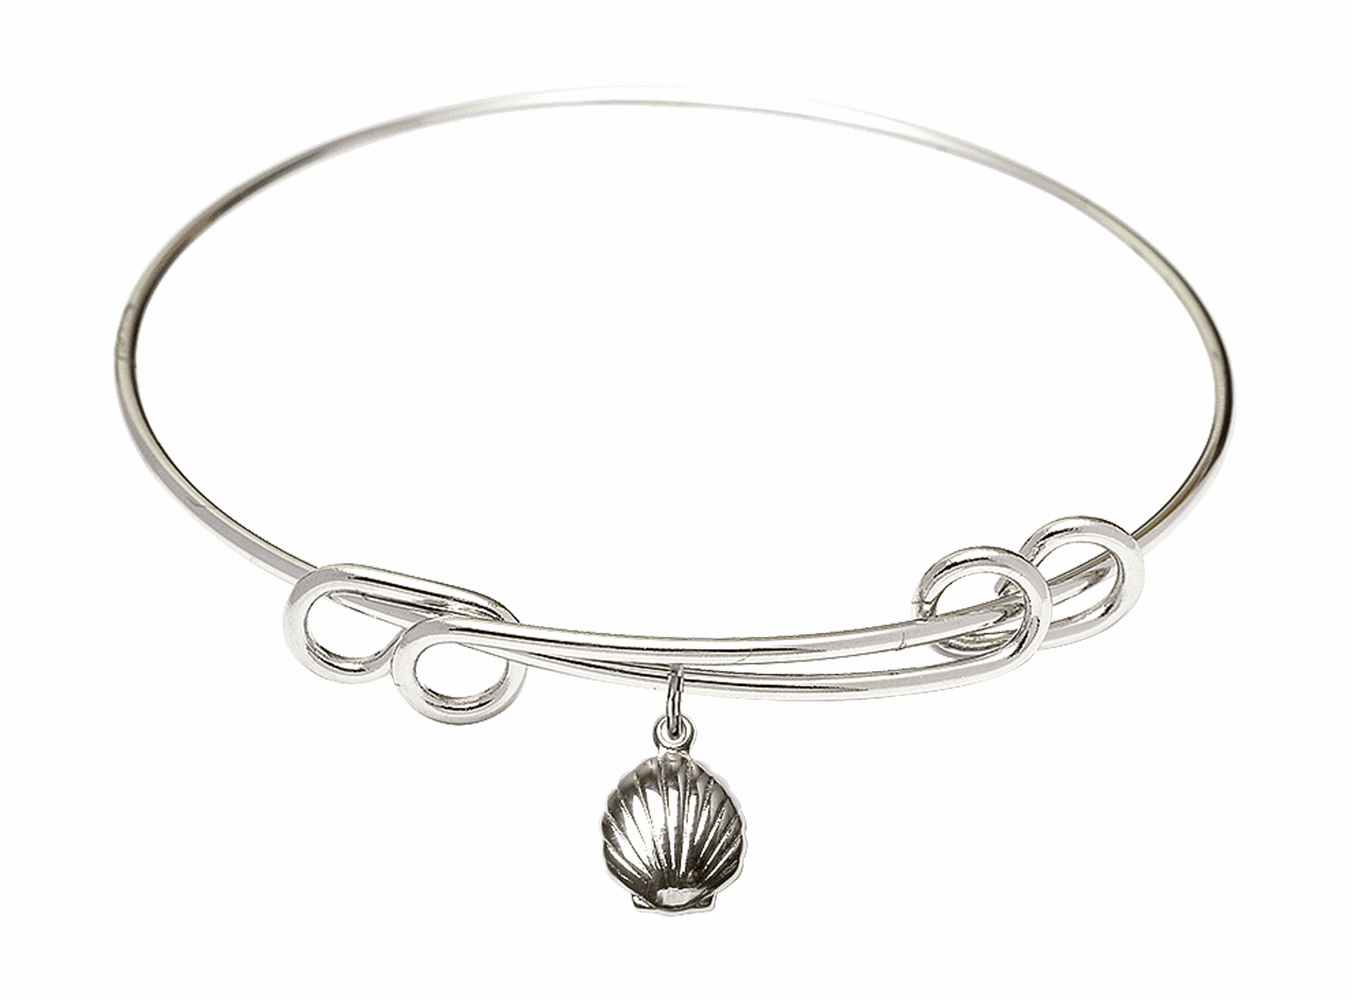 Round Double Loop Bangle Bracelet w/Baptism Shell Sterling Silver Charm by Bliss Mfg